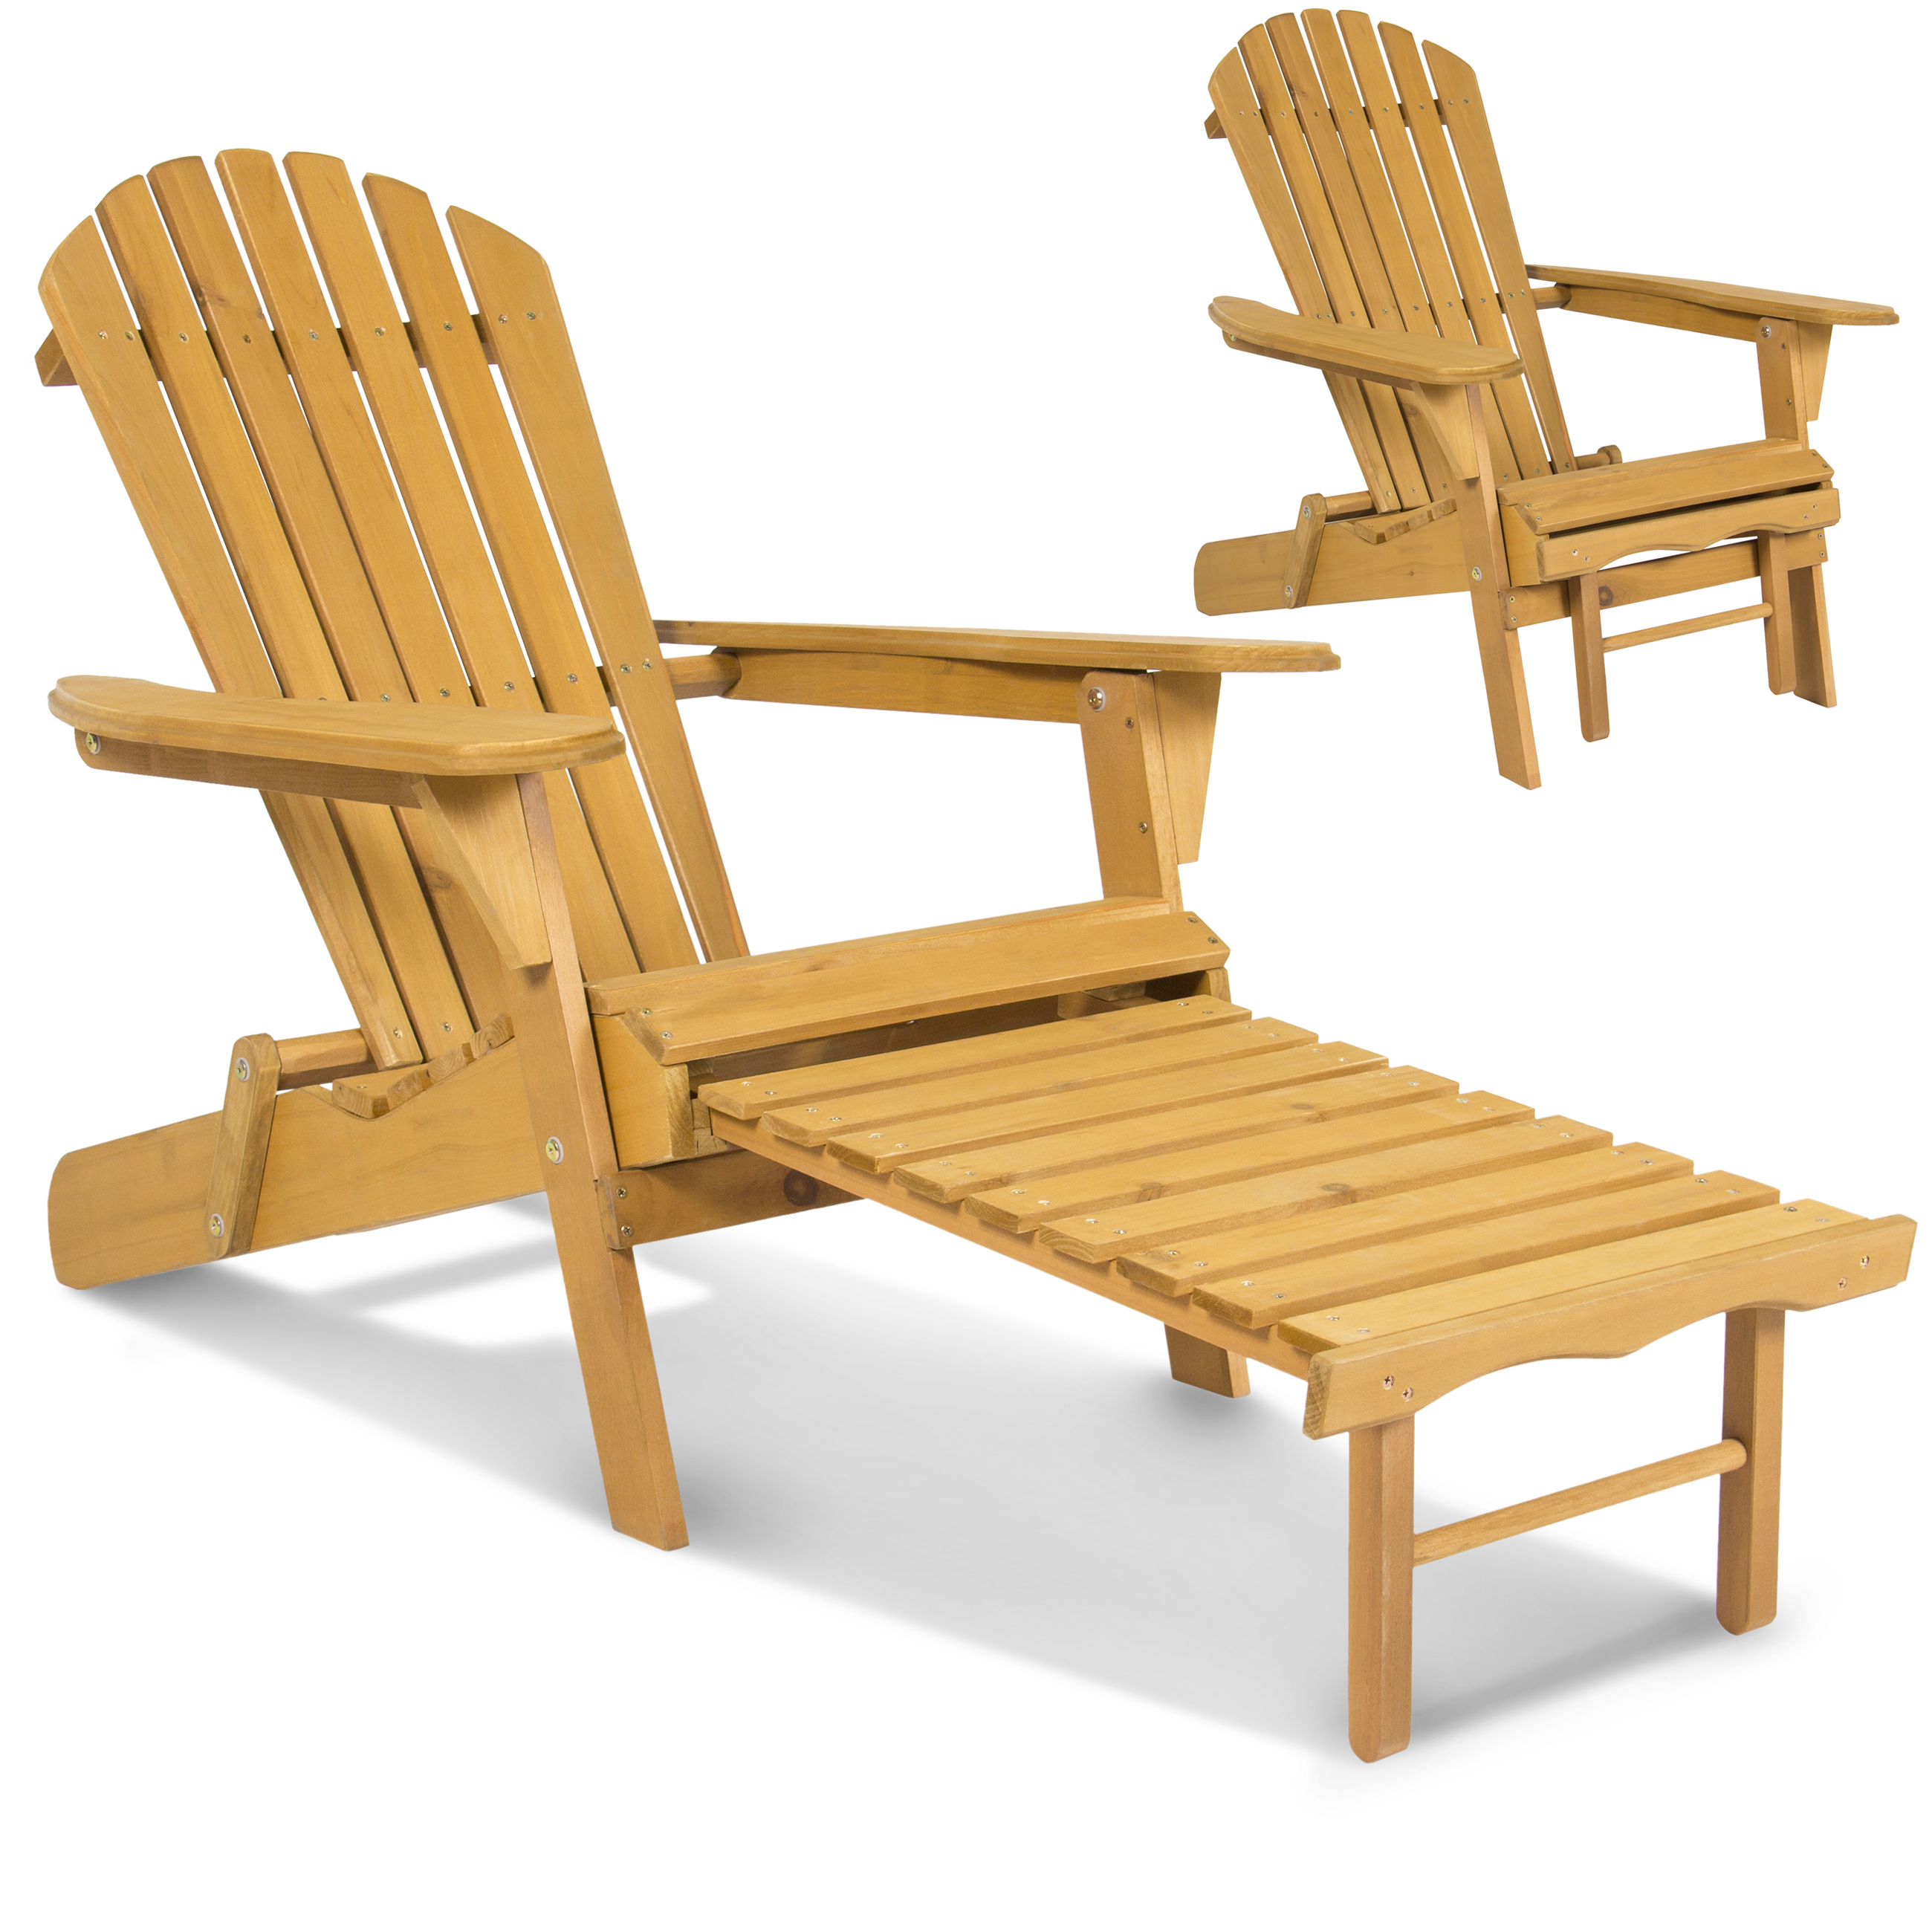 Outdoor Wooden Chairs outdoor wood adirondack chair foldable w/ pull out ottoman patio